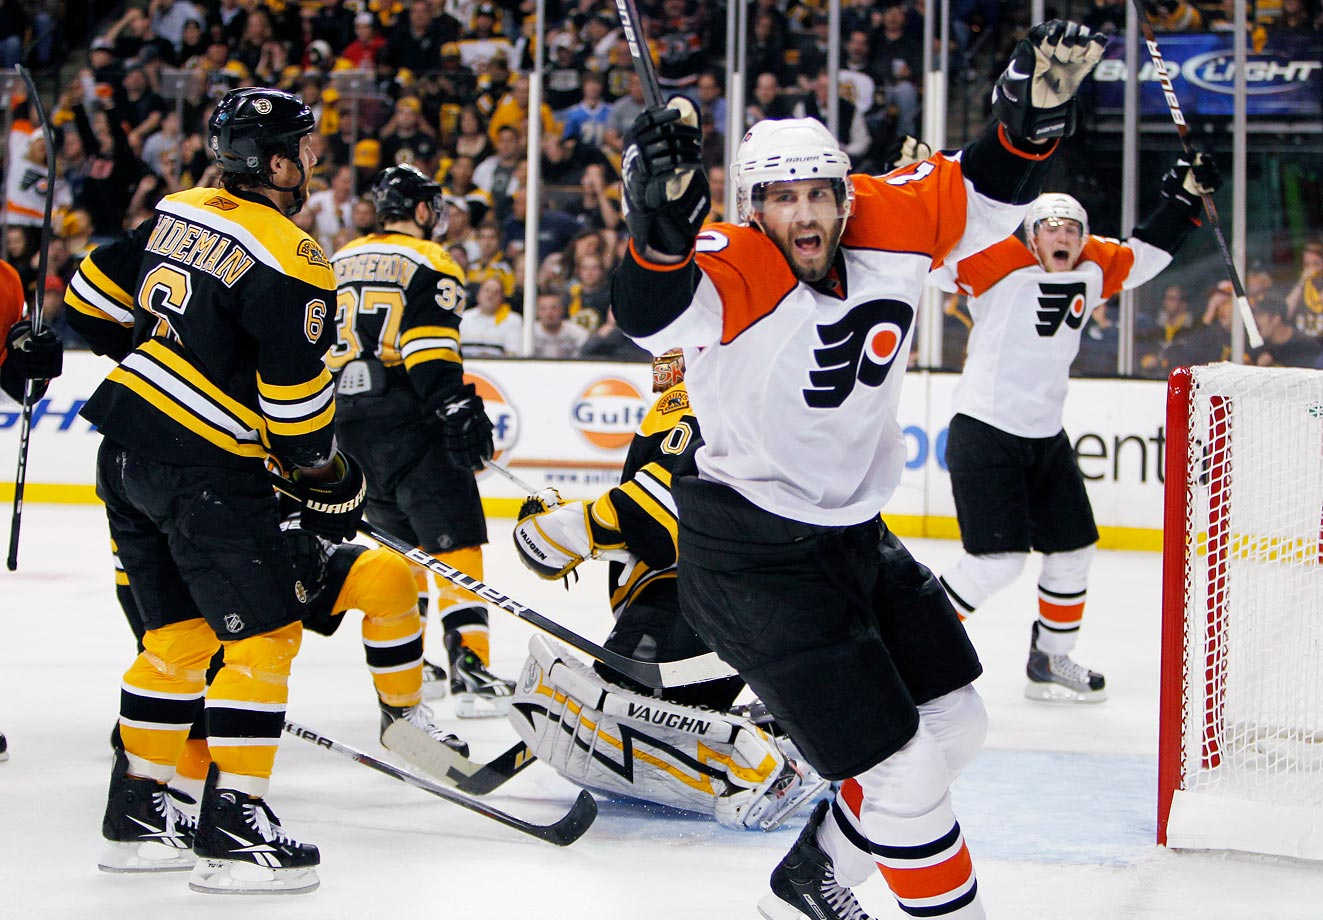 Down 3-0 in games, Philadelphia rallied to tie the series. Down 3-0 in Game 7, Philadelphia rallied again and Simon Gagne's power-play goal in the third period lifted the Flyers to an improbable 4-3 win over the Bruins. It was a humiliating defeat for Boston, which became the third team in NHL history to flush a series after winning the first three games. The Flyers thus joined the exclusive ranks of the 1942 Toronto Maple Leafs, who beat Detroit, and the 1975 New York Islanders, who eliminated Pittsburgh, by climbing out of an 0-3 coffin. The other 159 teams that had won the first three games of a series had prevailed.